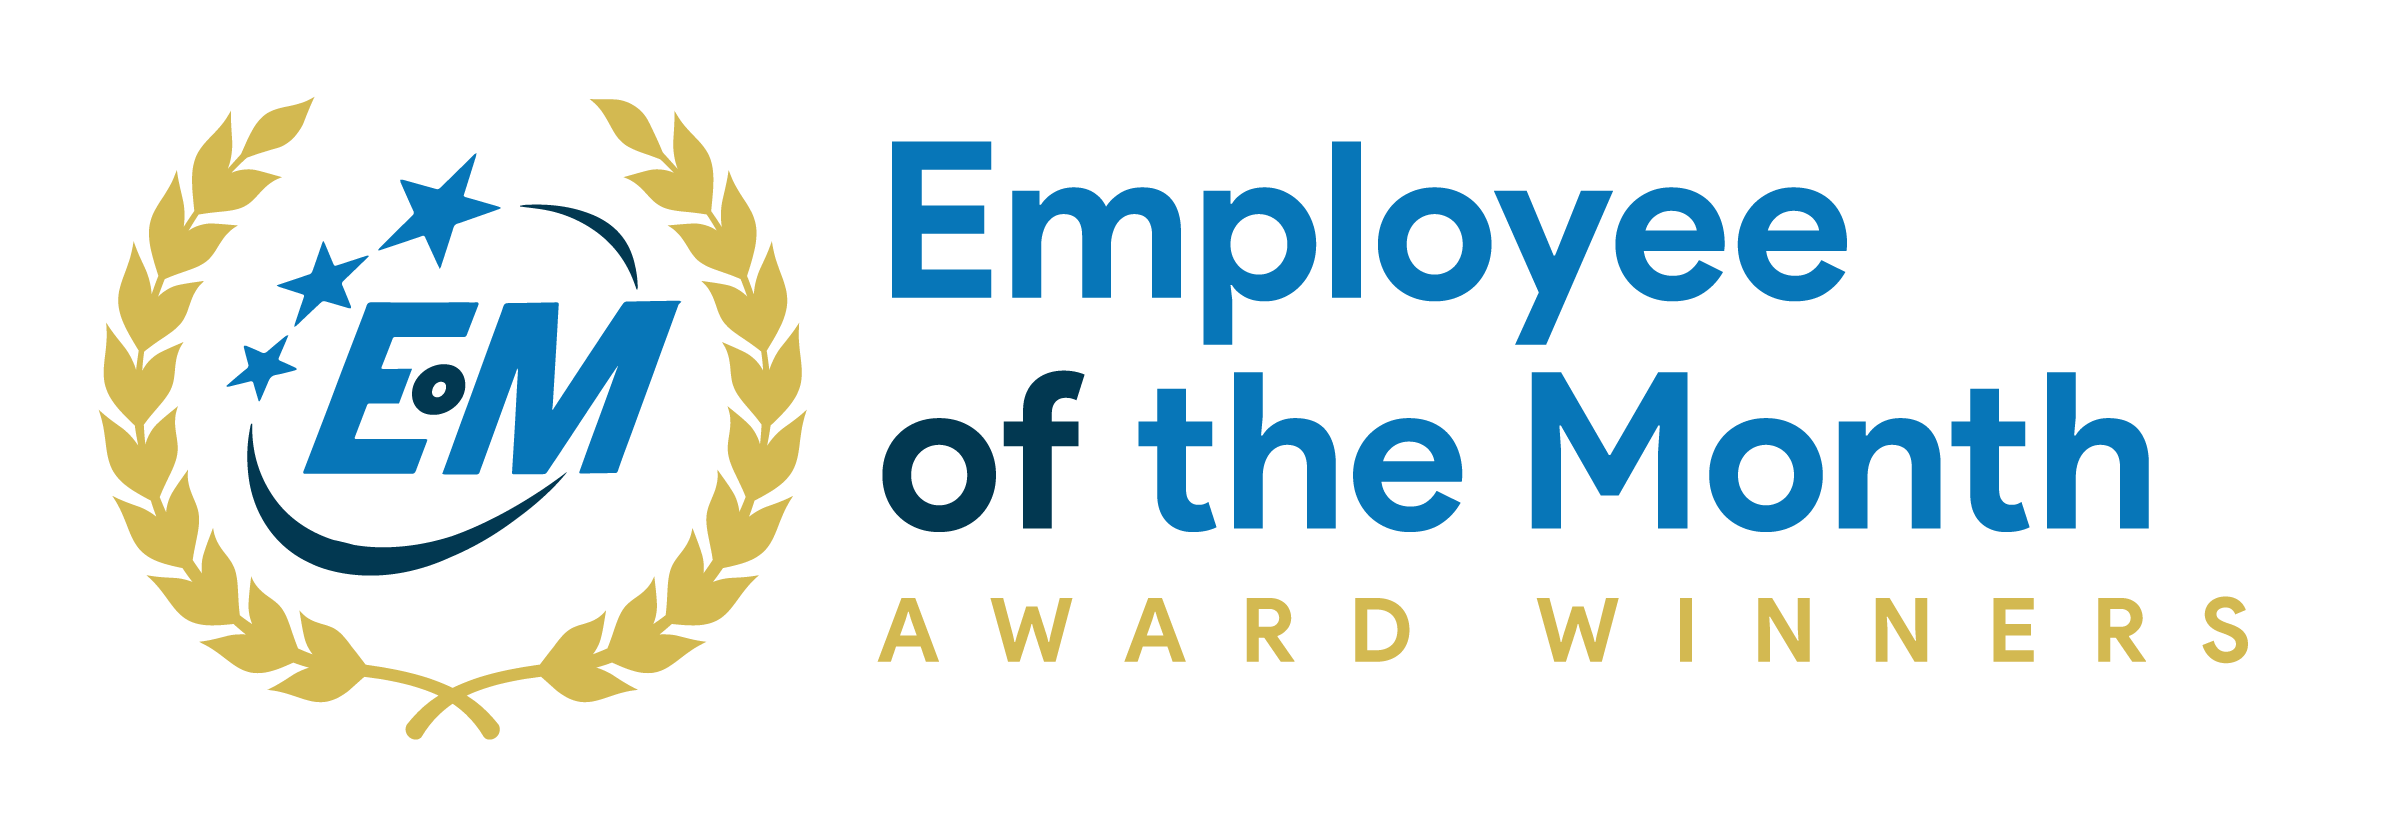 october 2018 employees of the month